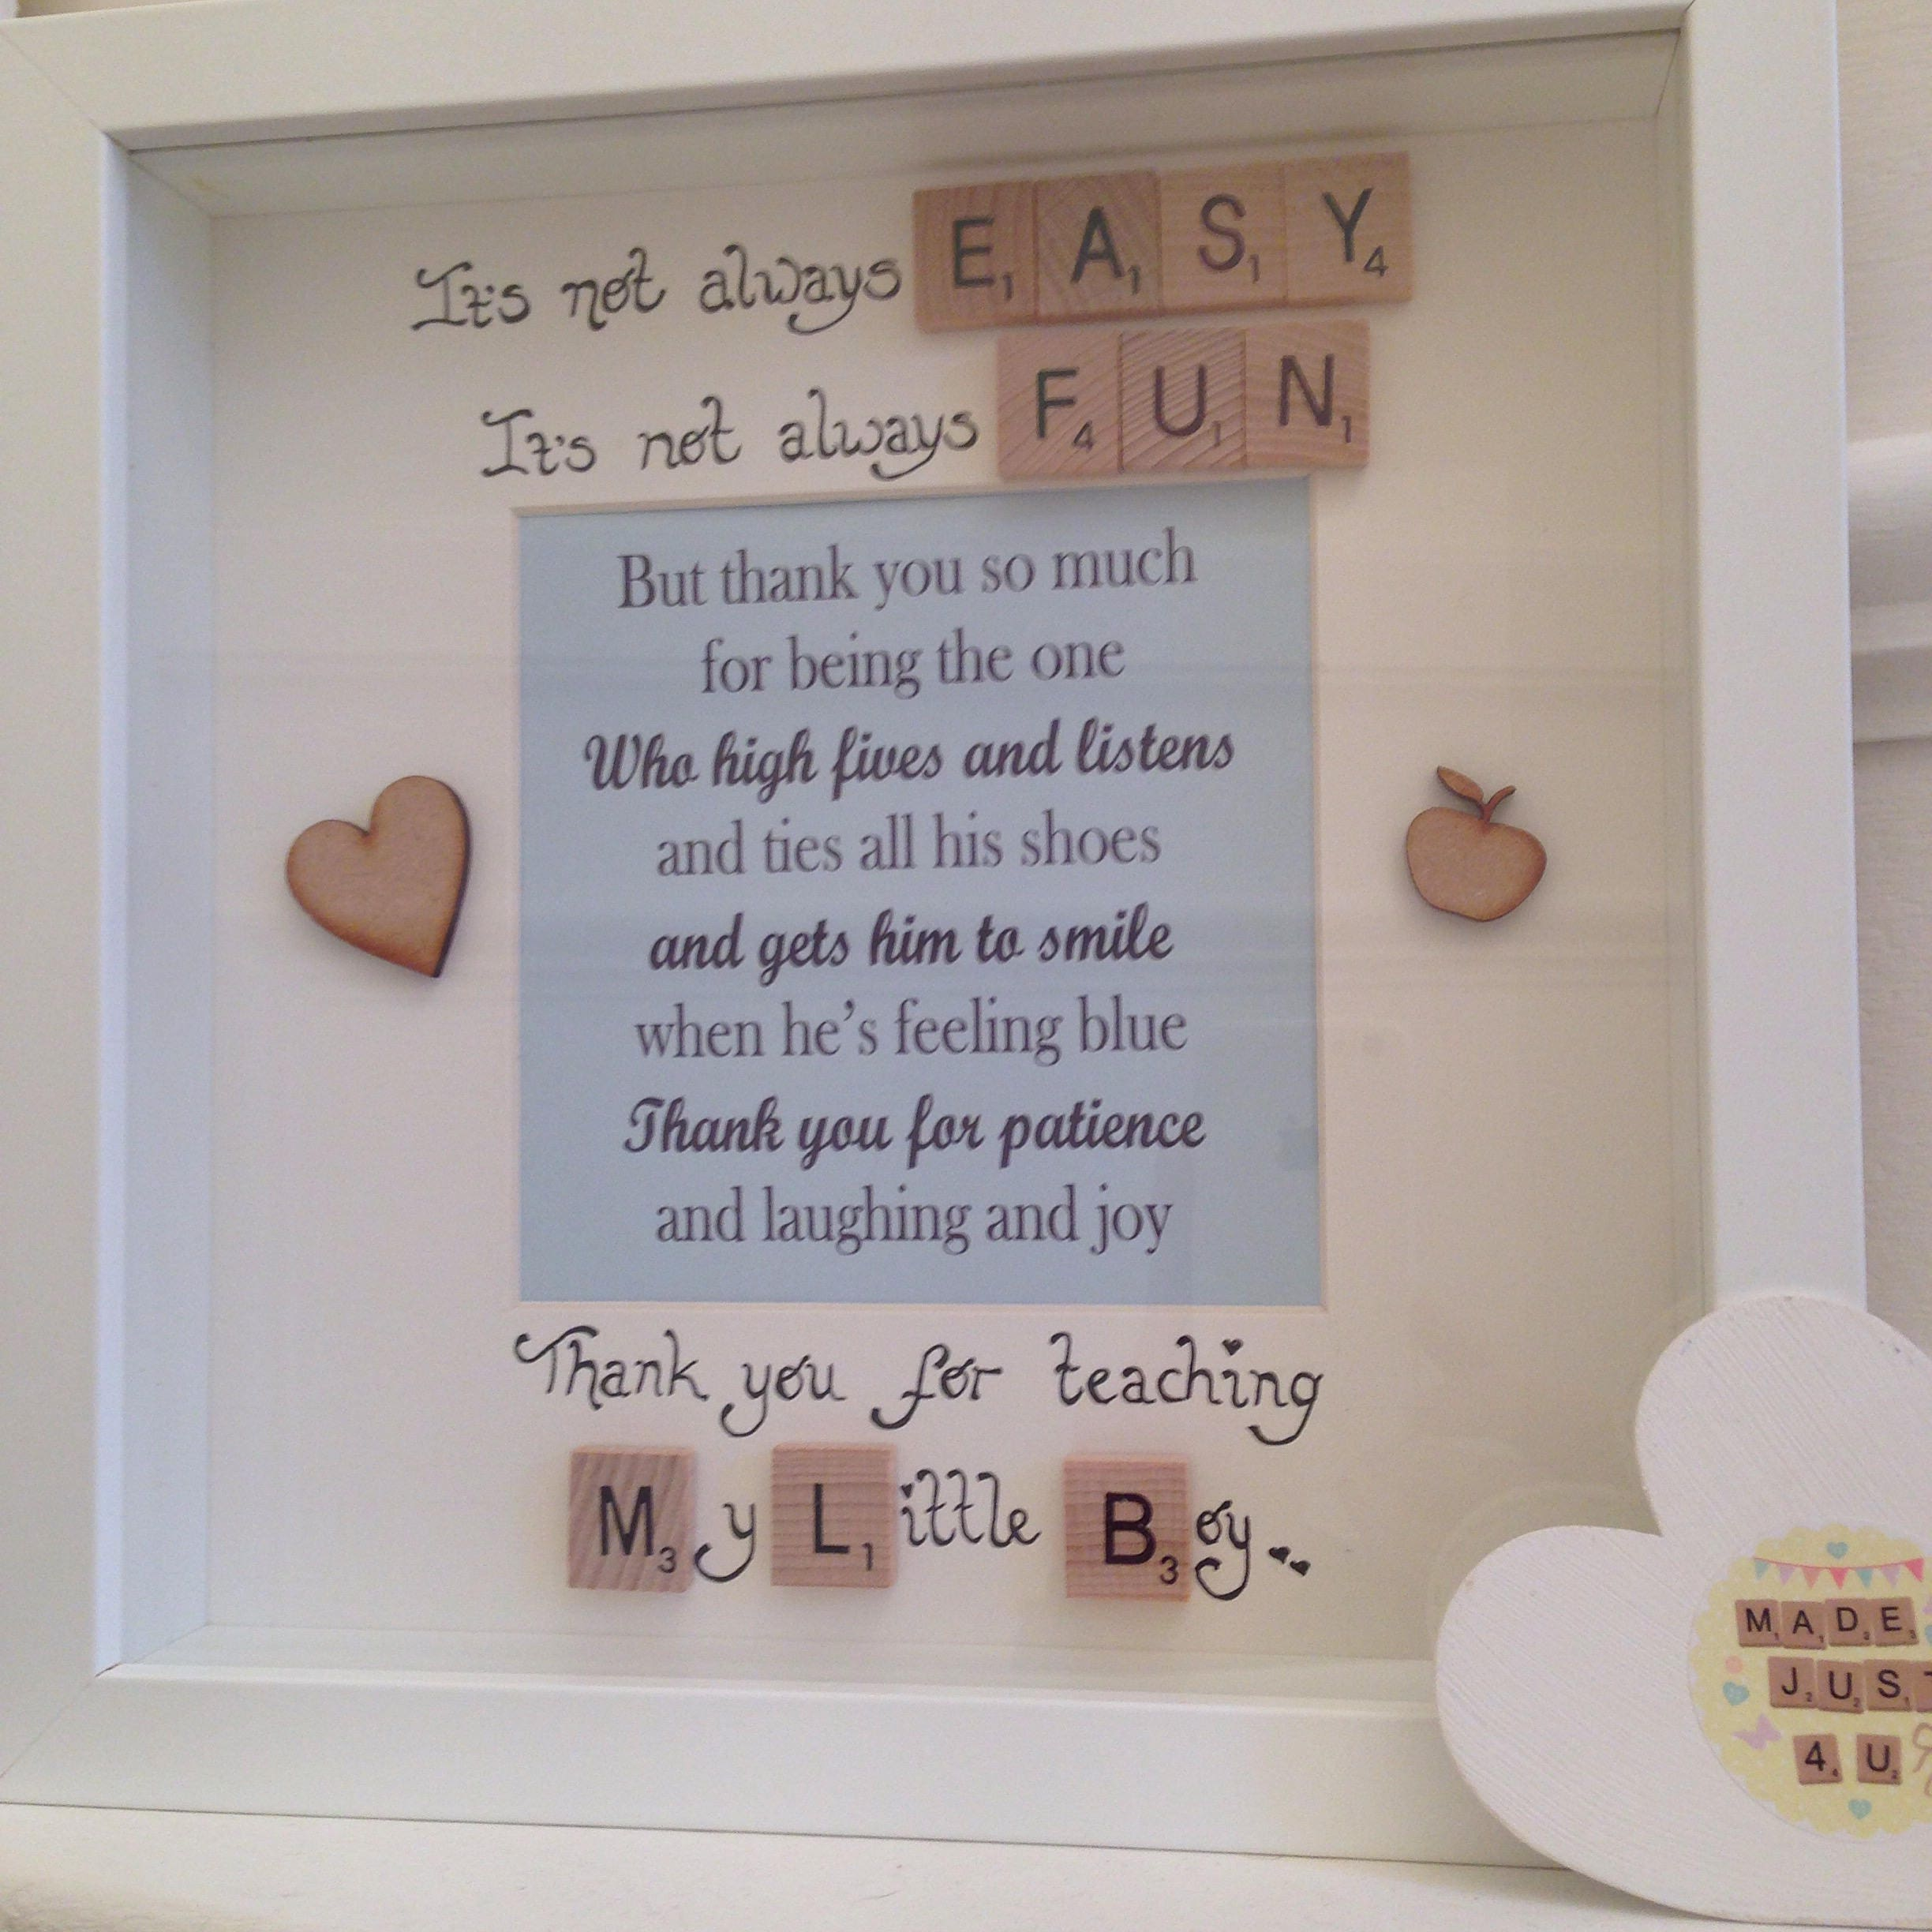 Thank you for teaching my little boy teacher gift personalised 2881 jeuxipadfo Choice Image